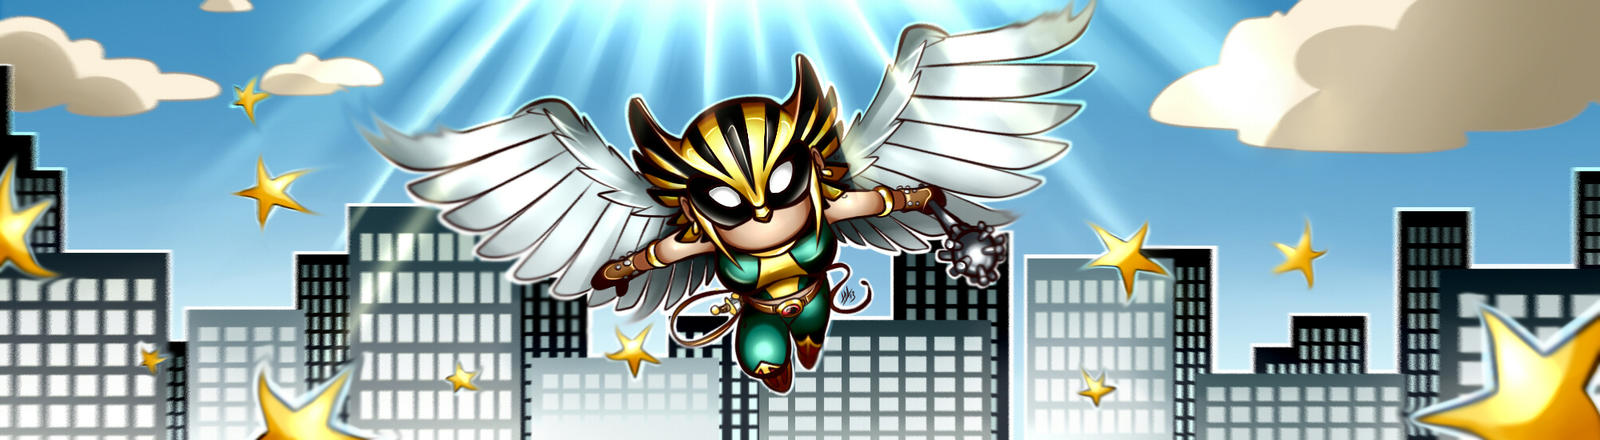 Scribblenaut Contest Entry: Hawkgirl by Smudgeandfrank